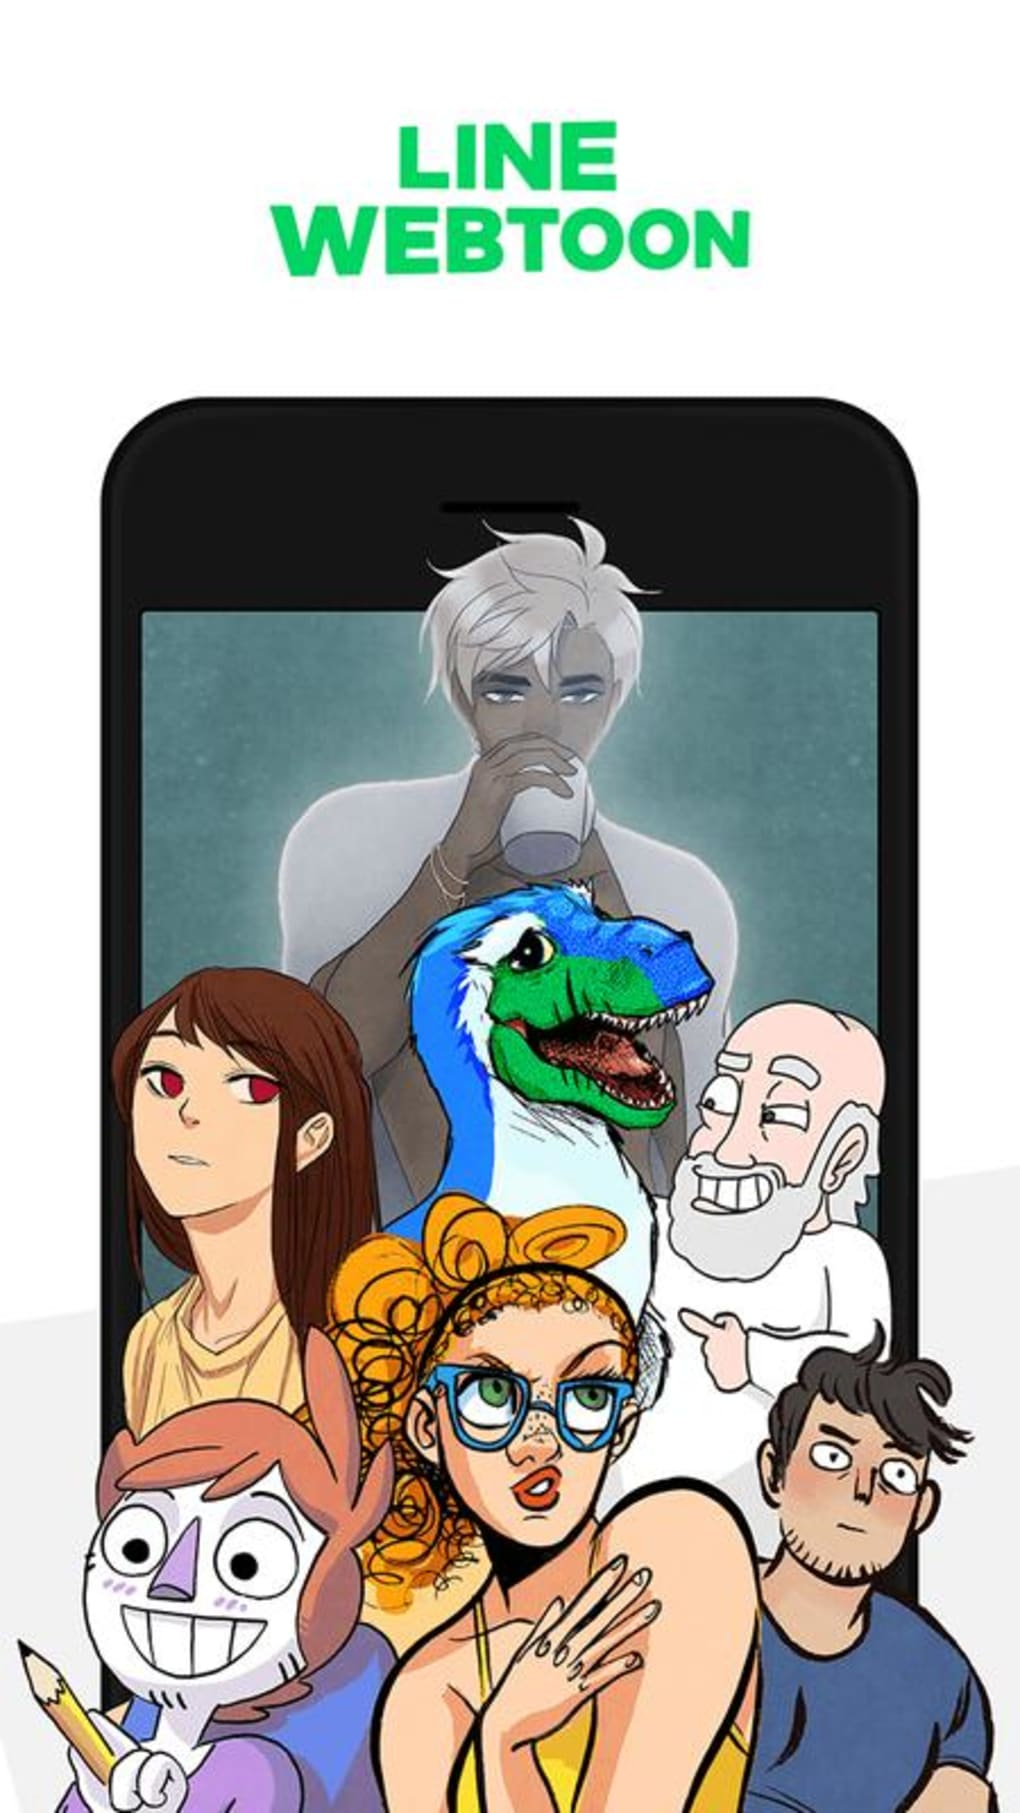 LINE Webtoon for Android - Download